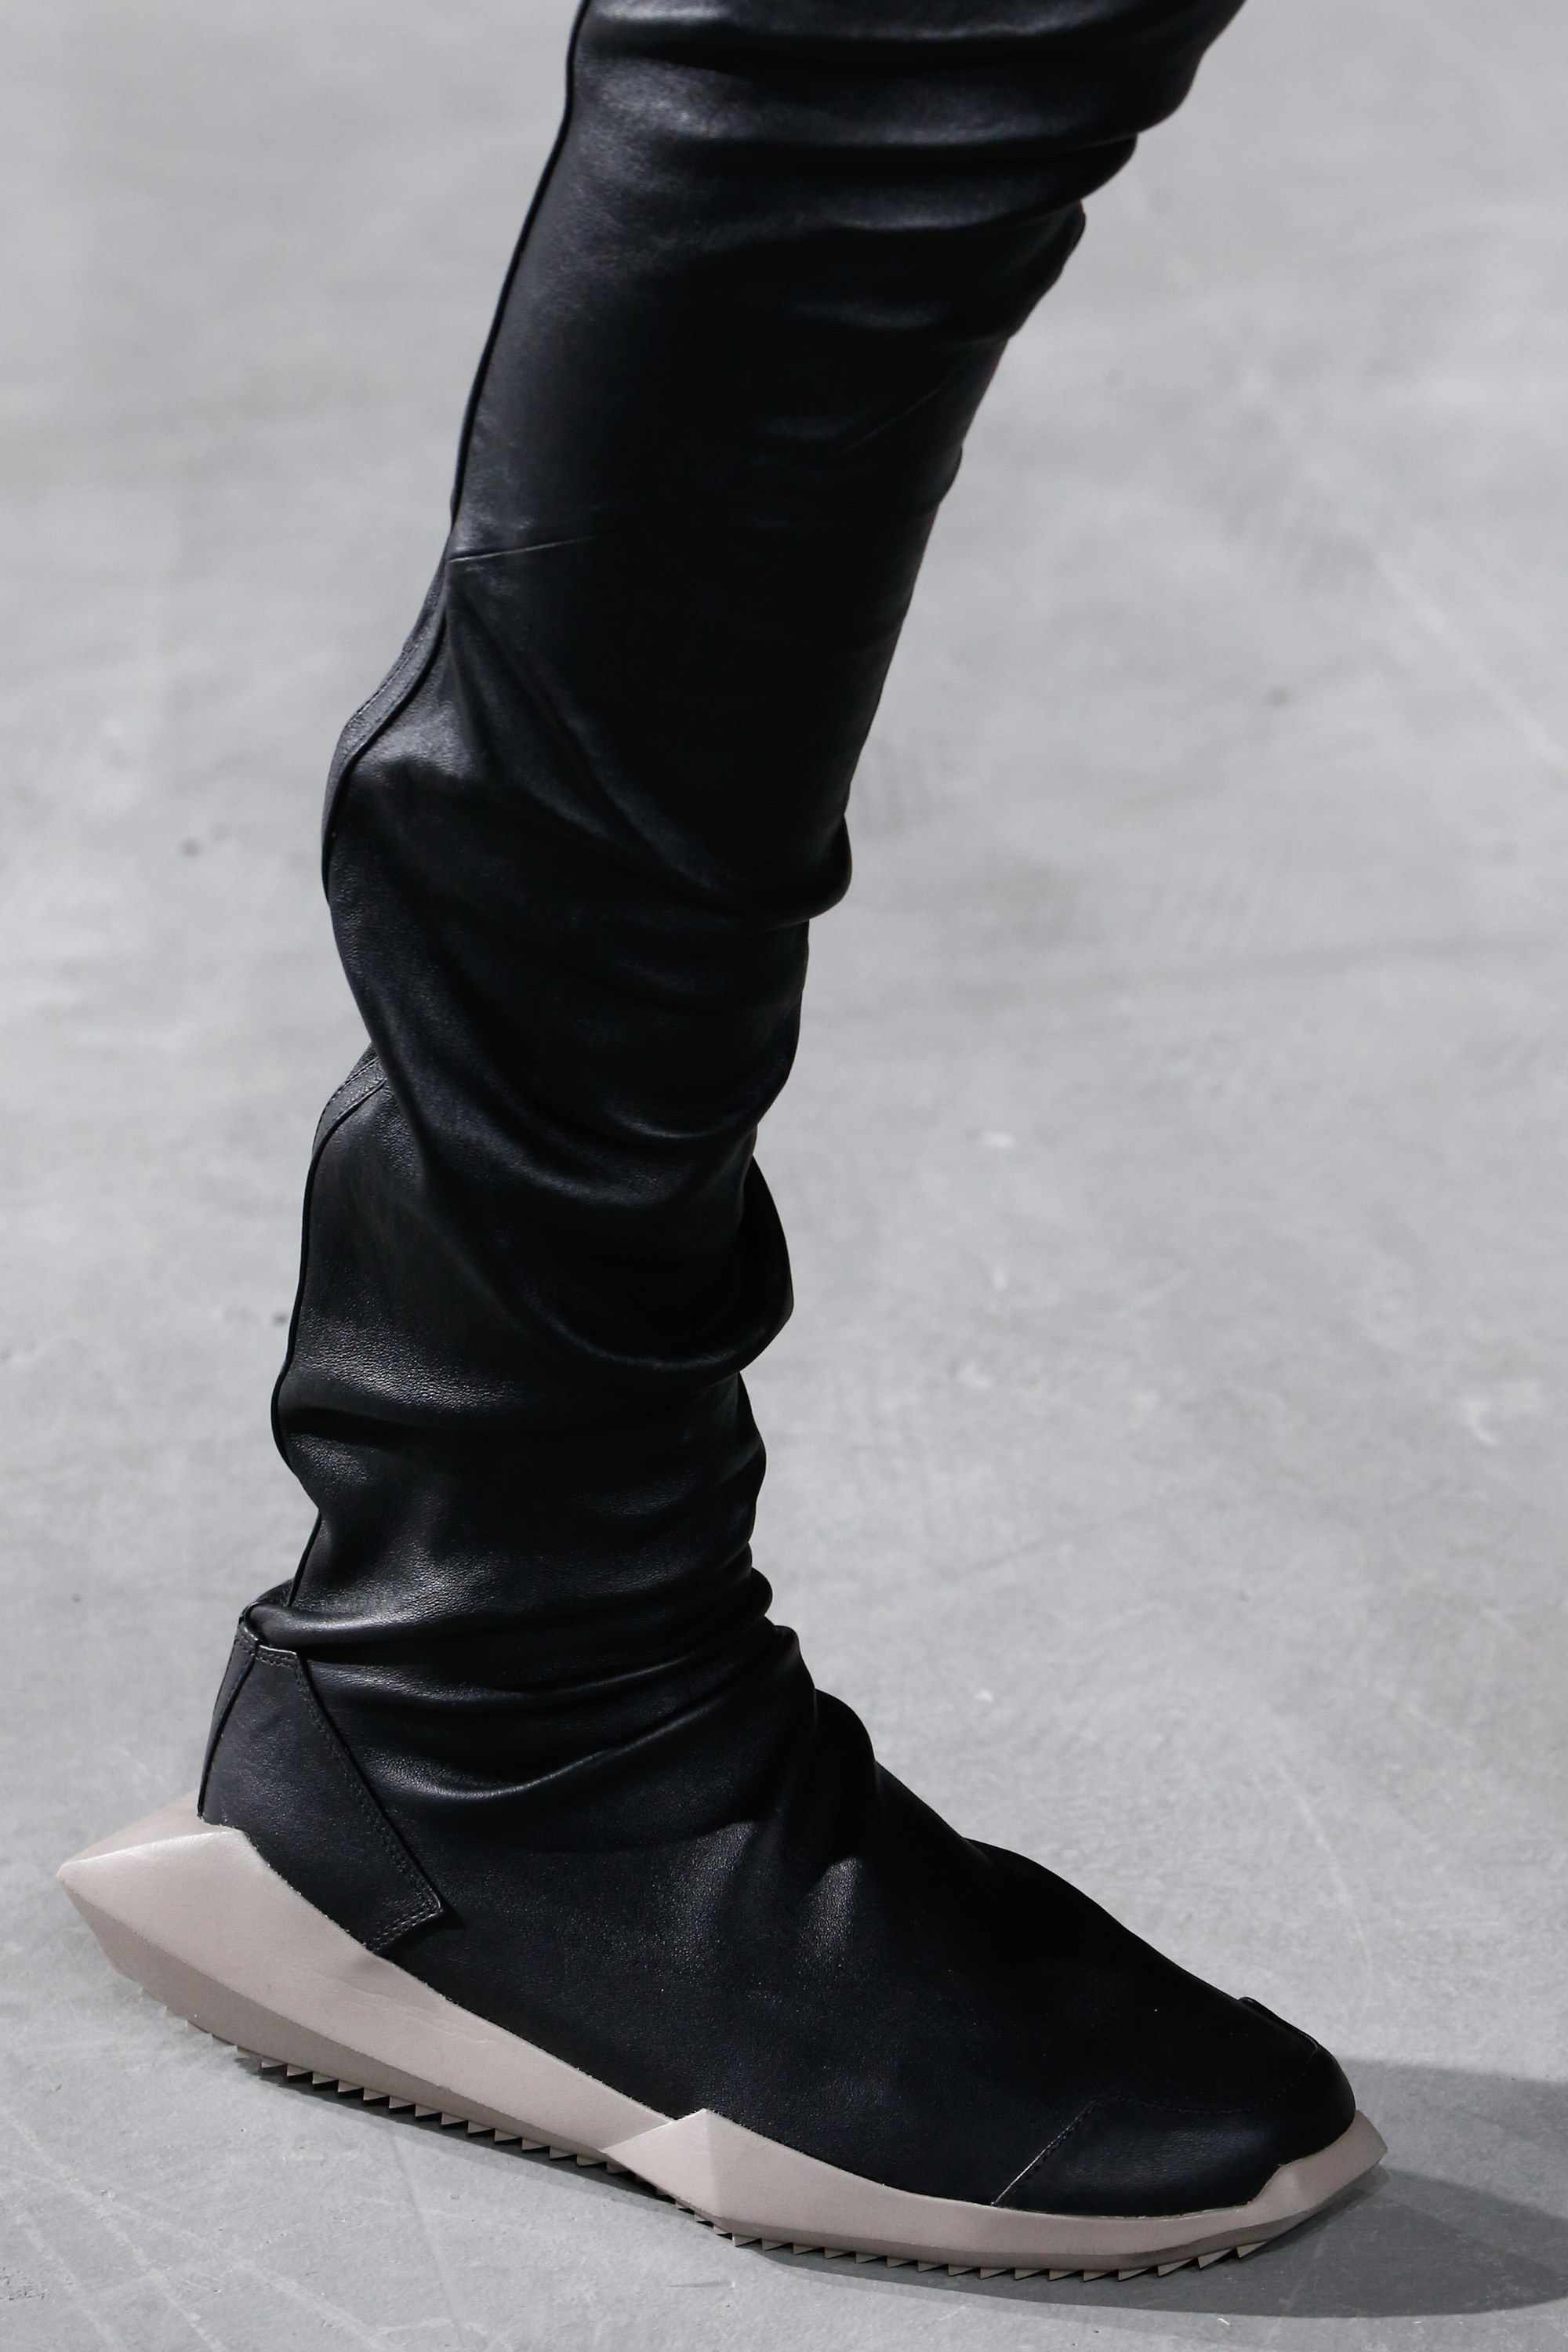 Rick Owens Fall 2016 Ready To Wear Fashion Show Details Vogue Sneakers Outfit Men Rick Owens Sneakers Sneakers Outfit